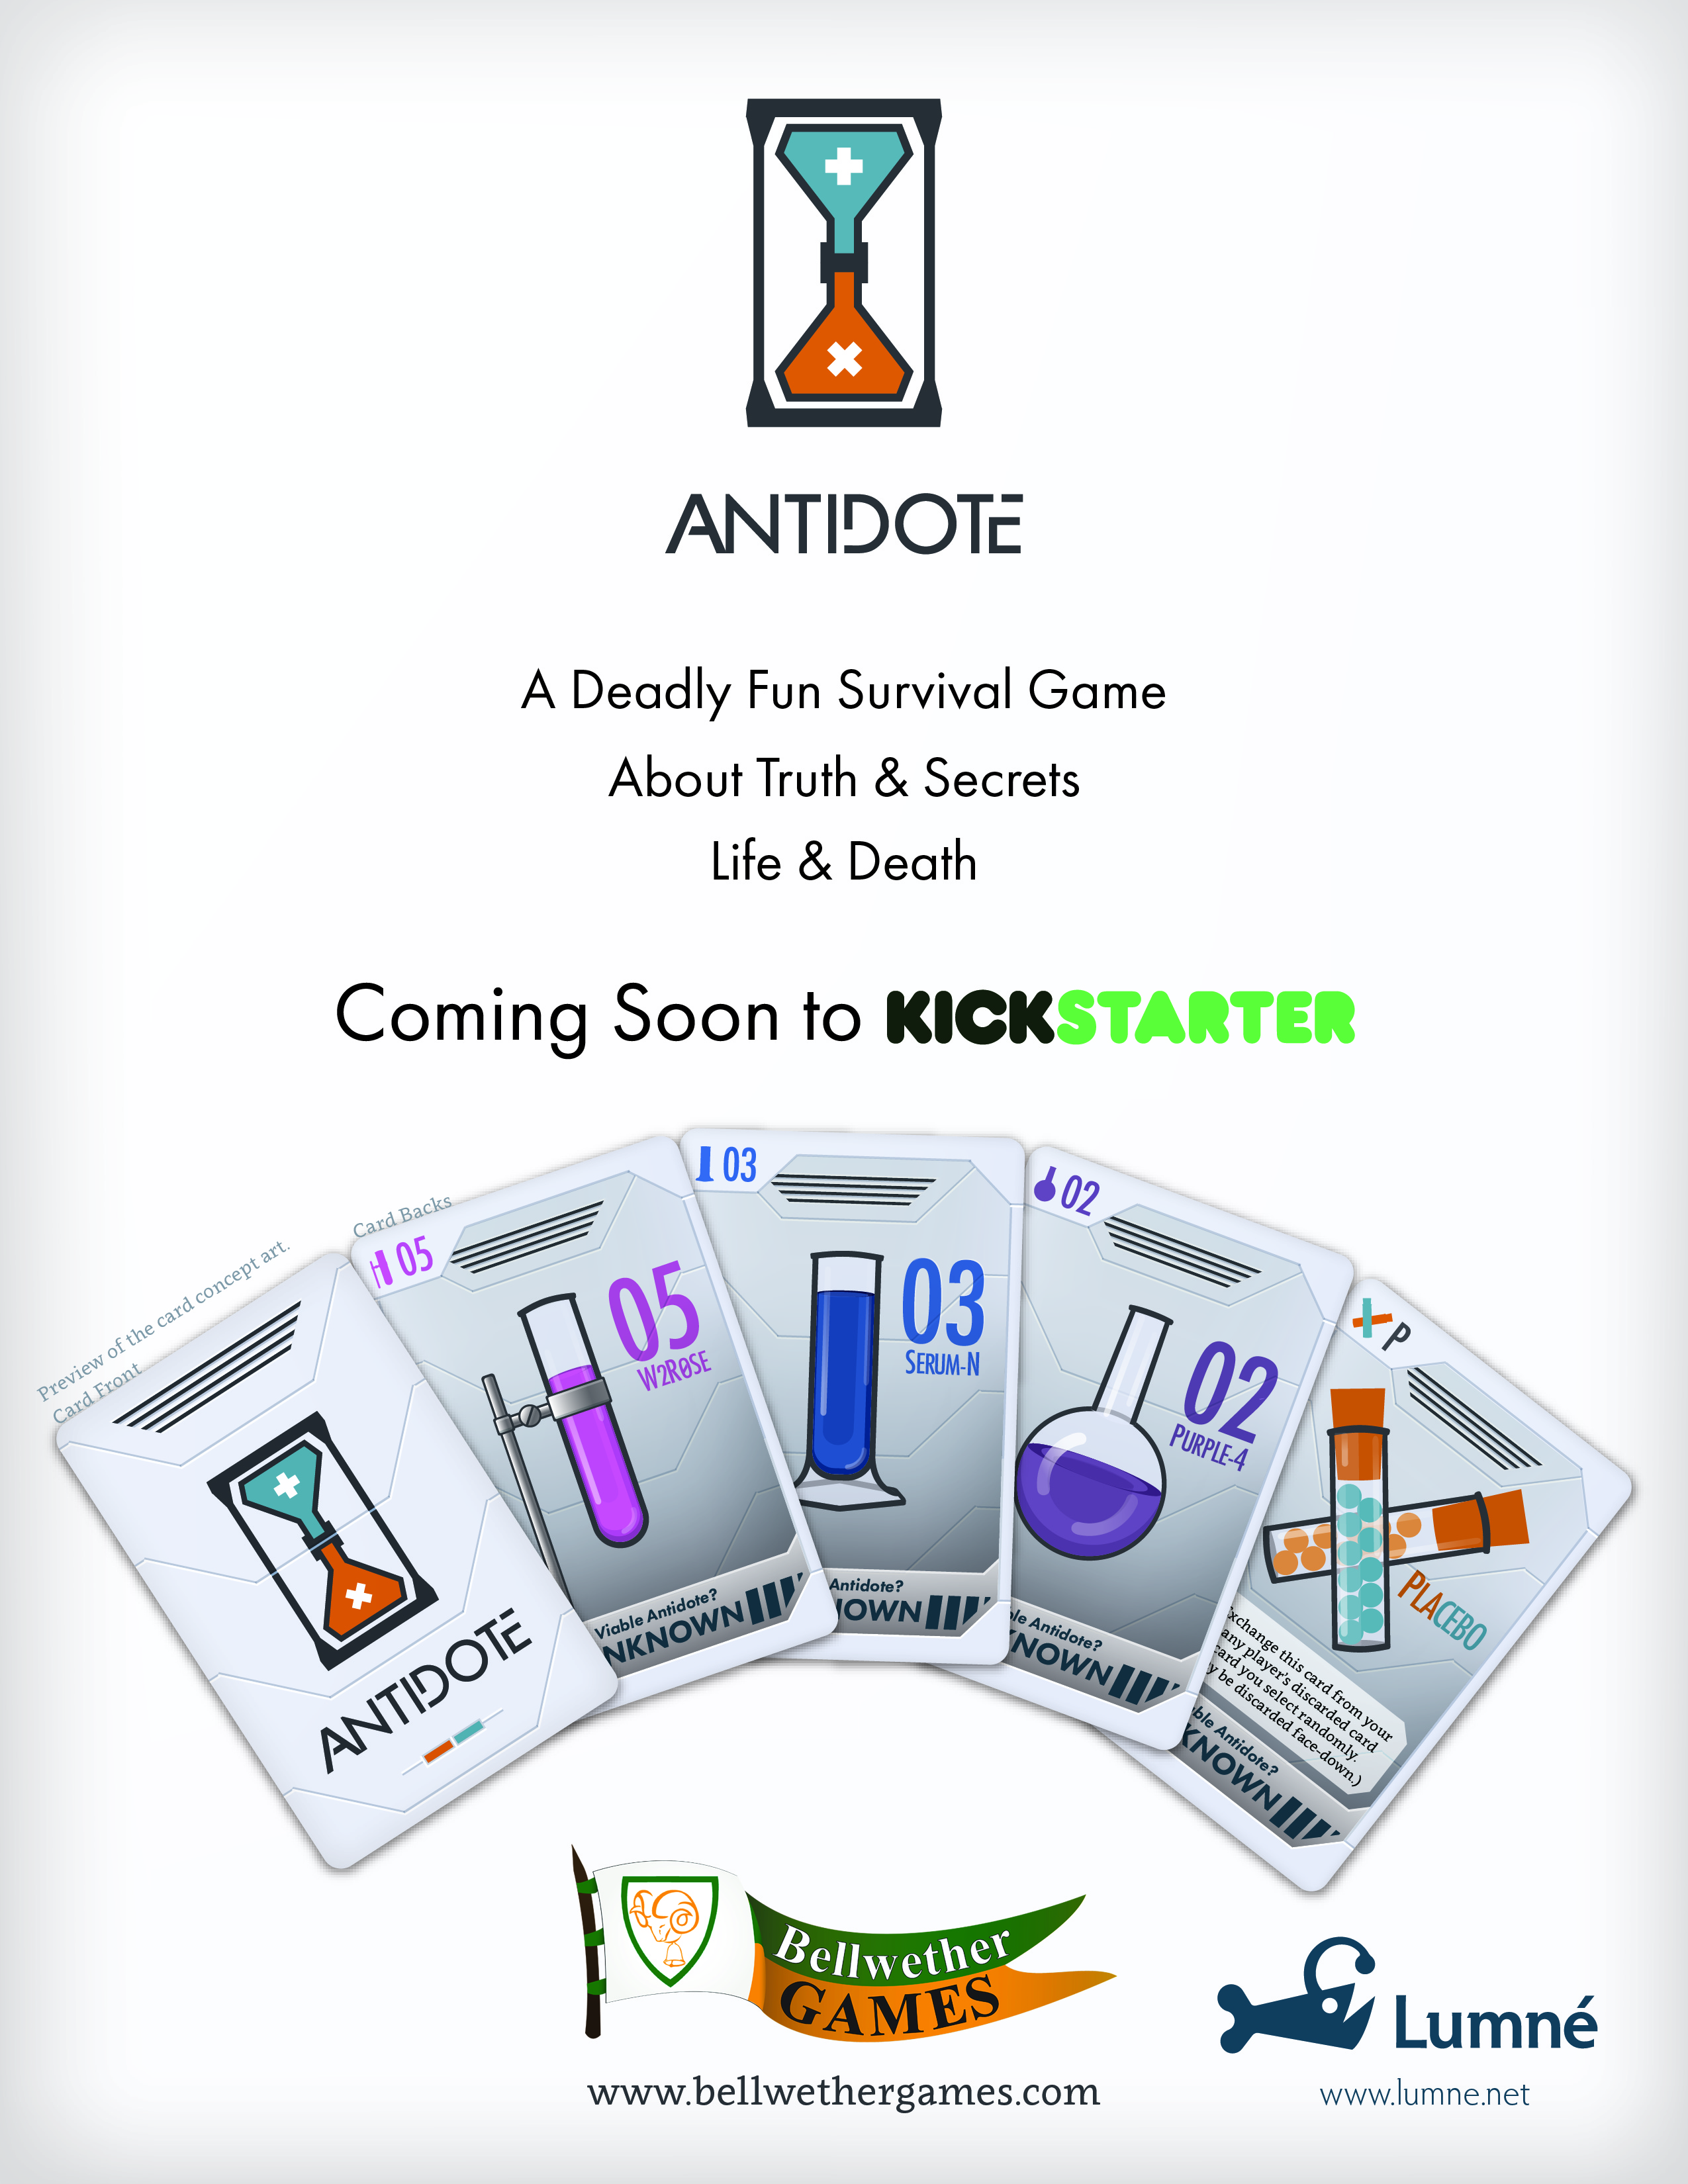 antidote game promo image